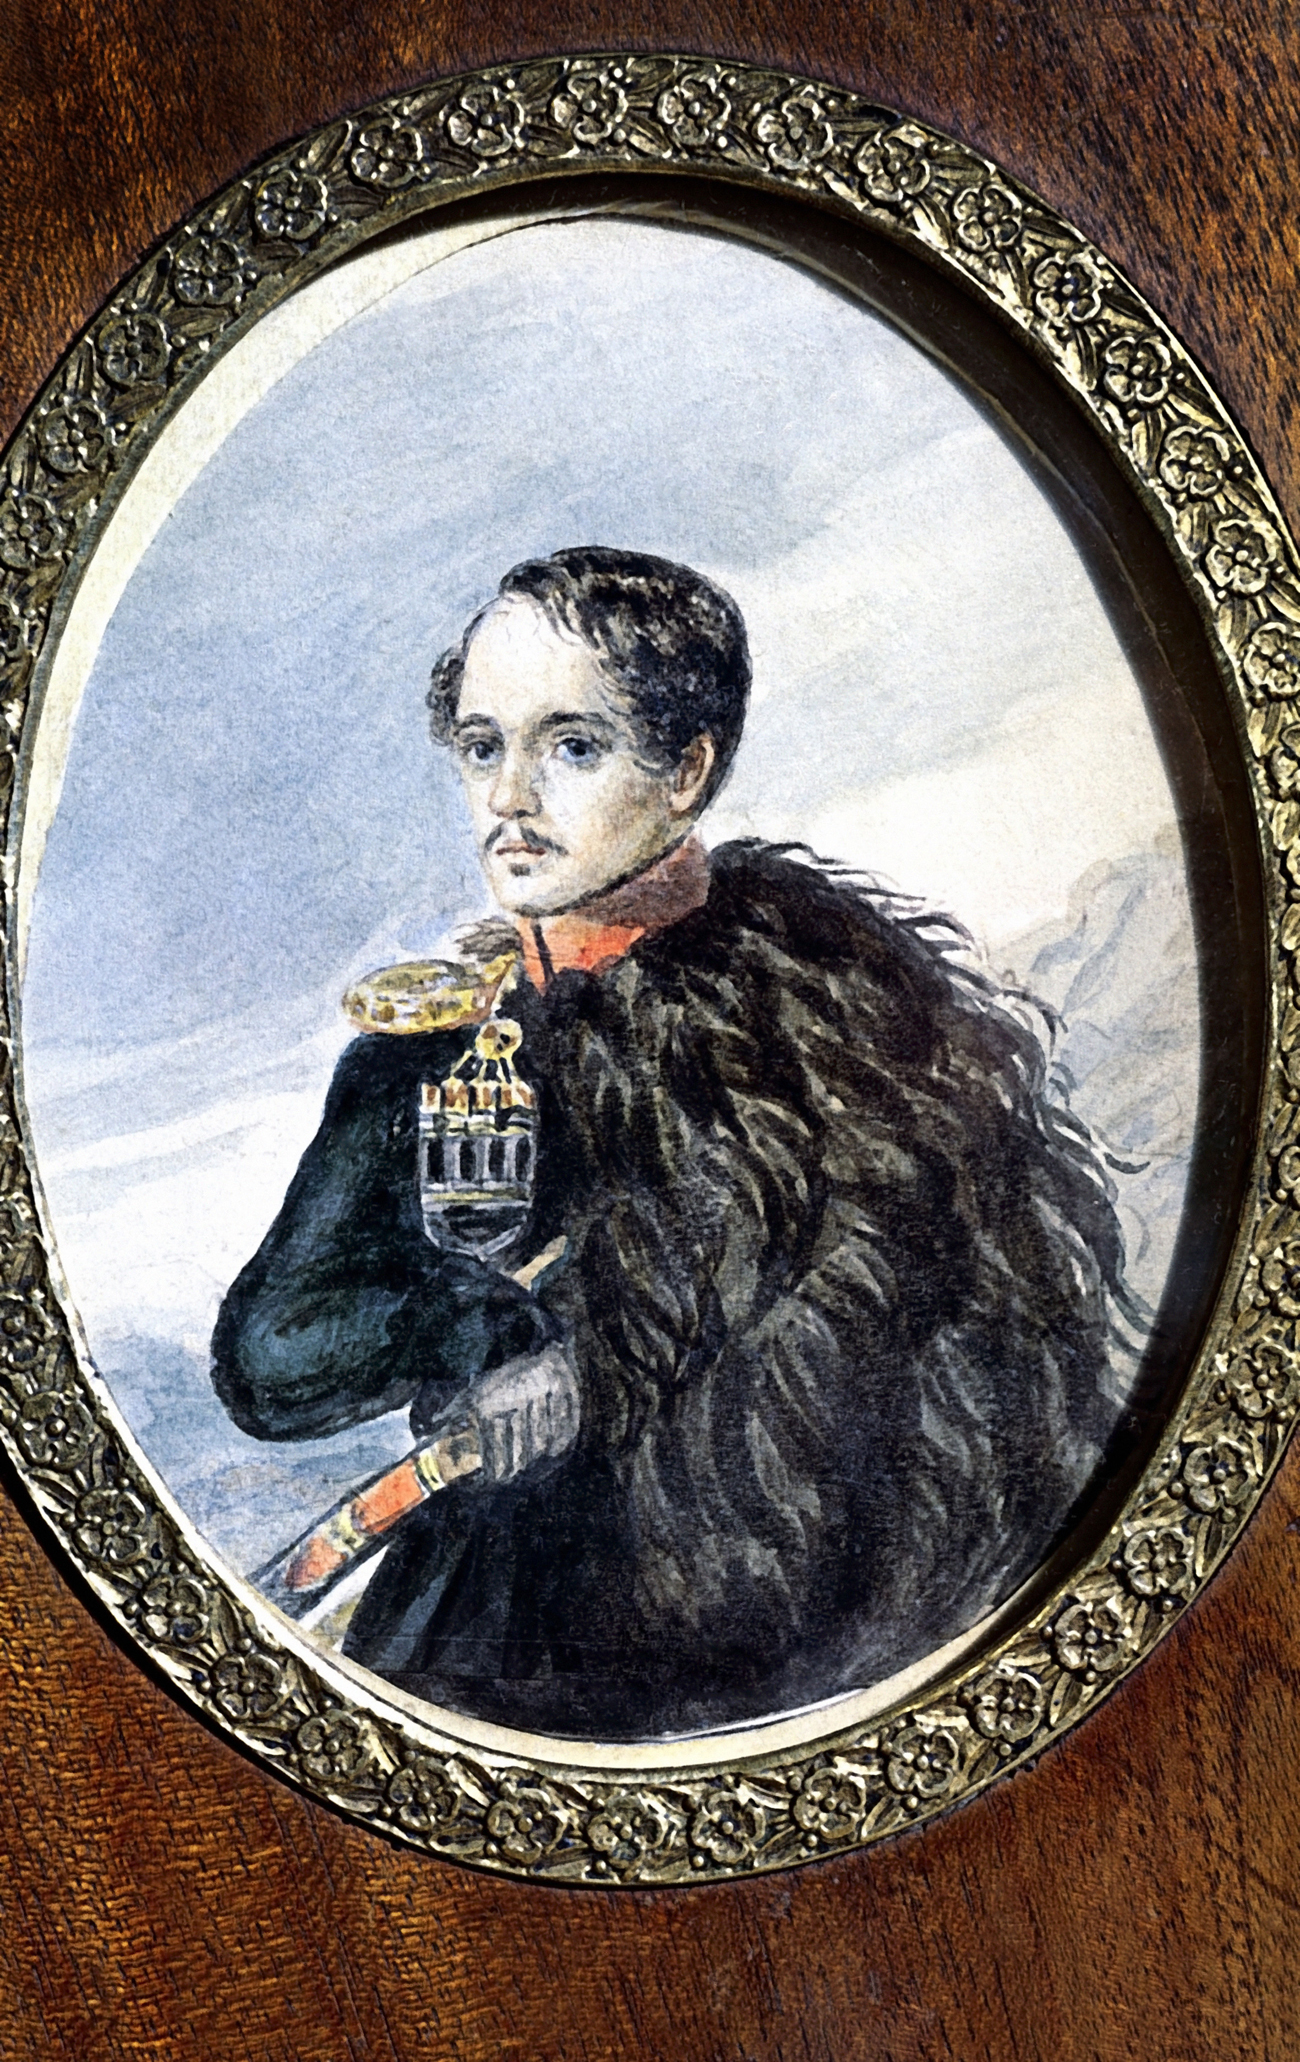 Mikhail Lermontov, self-portrait, 1847 from the collection of the State Literary Museum, Moscow. Source: RIA Novosti